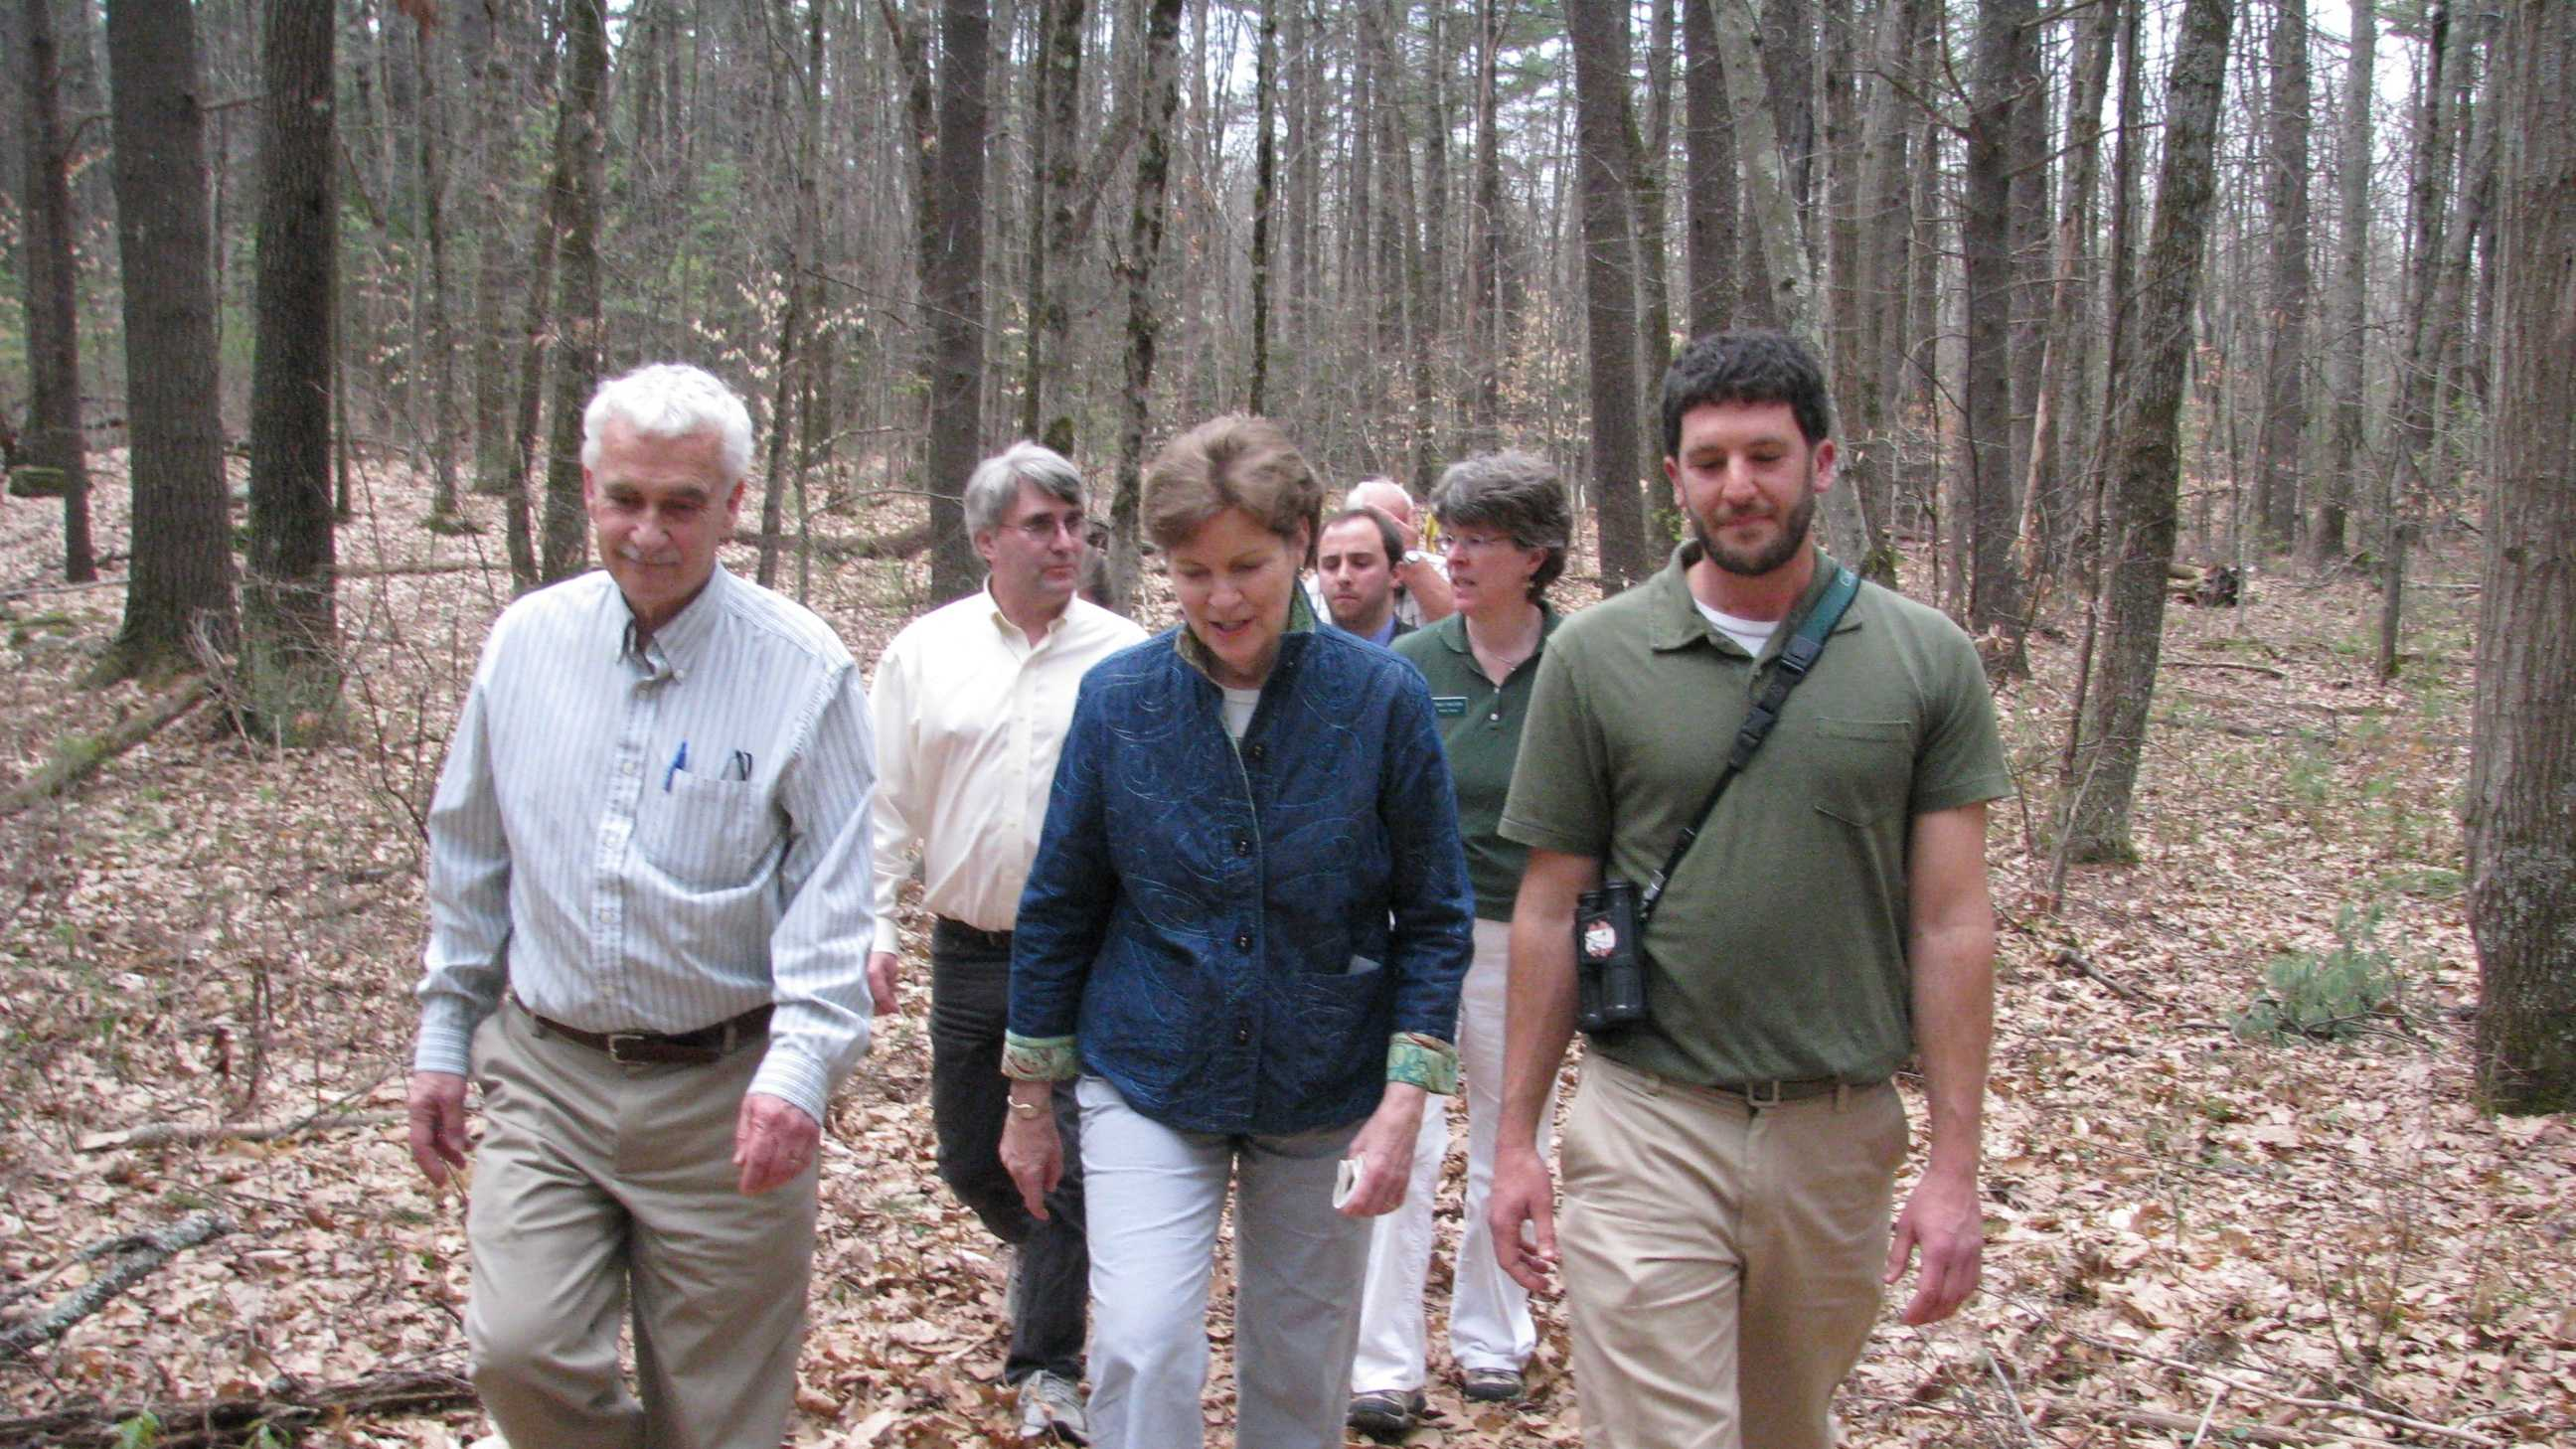 U.S. Sen. Jeanne Shaheen and conservationists walk the trails at the NH Audubon's McLane Center, Tuesday, during Earth Day and following a discussion on the impacts of climate change on the region.